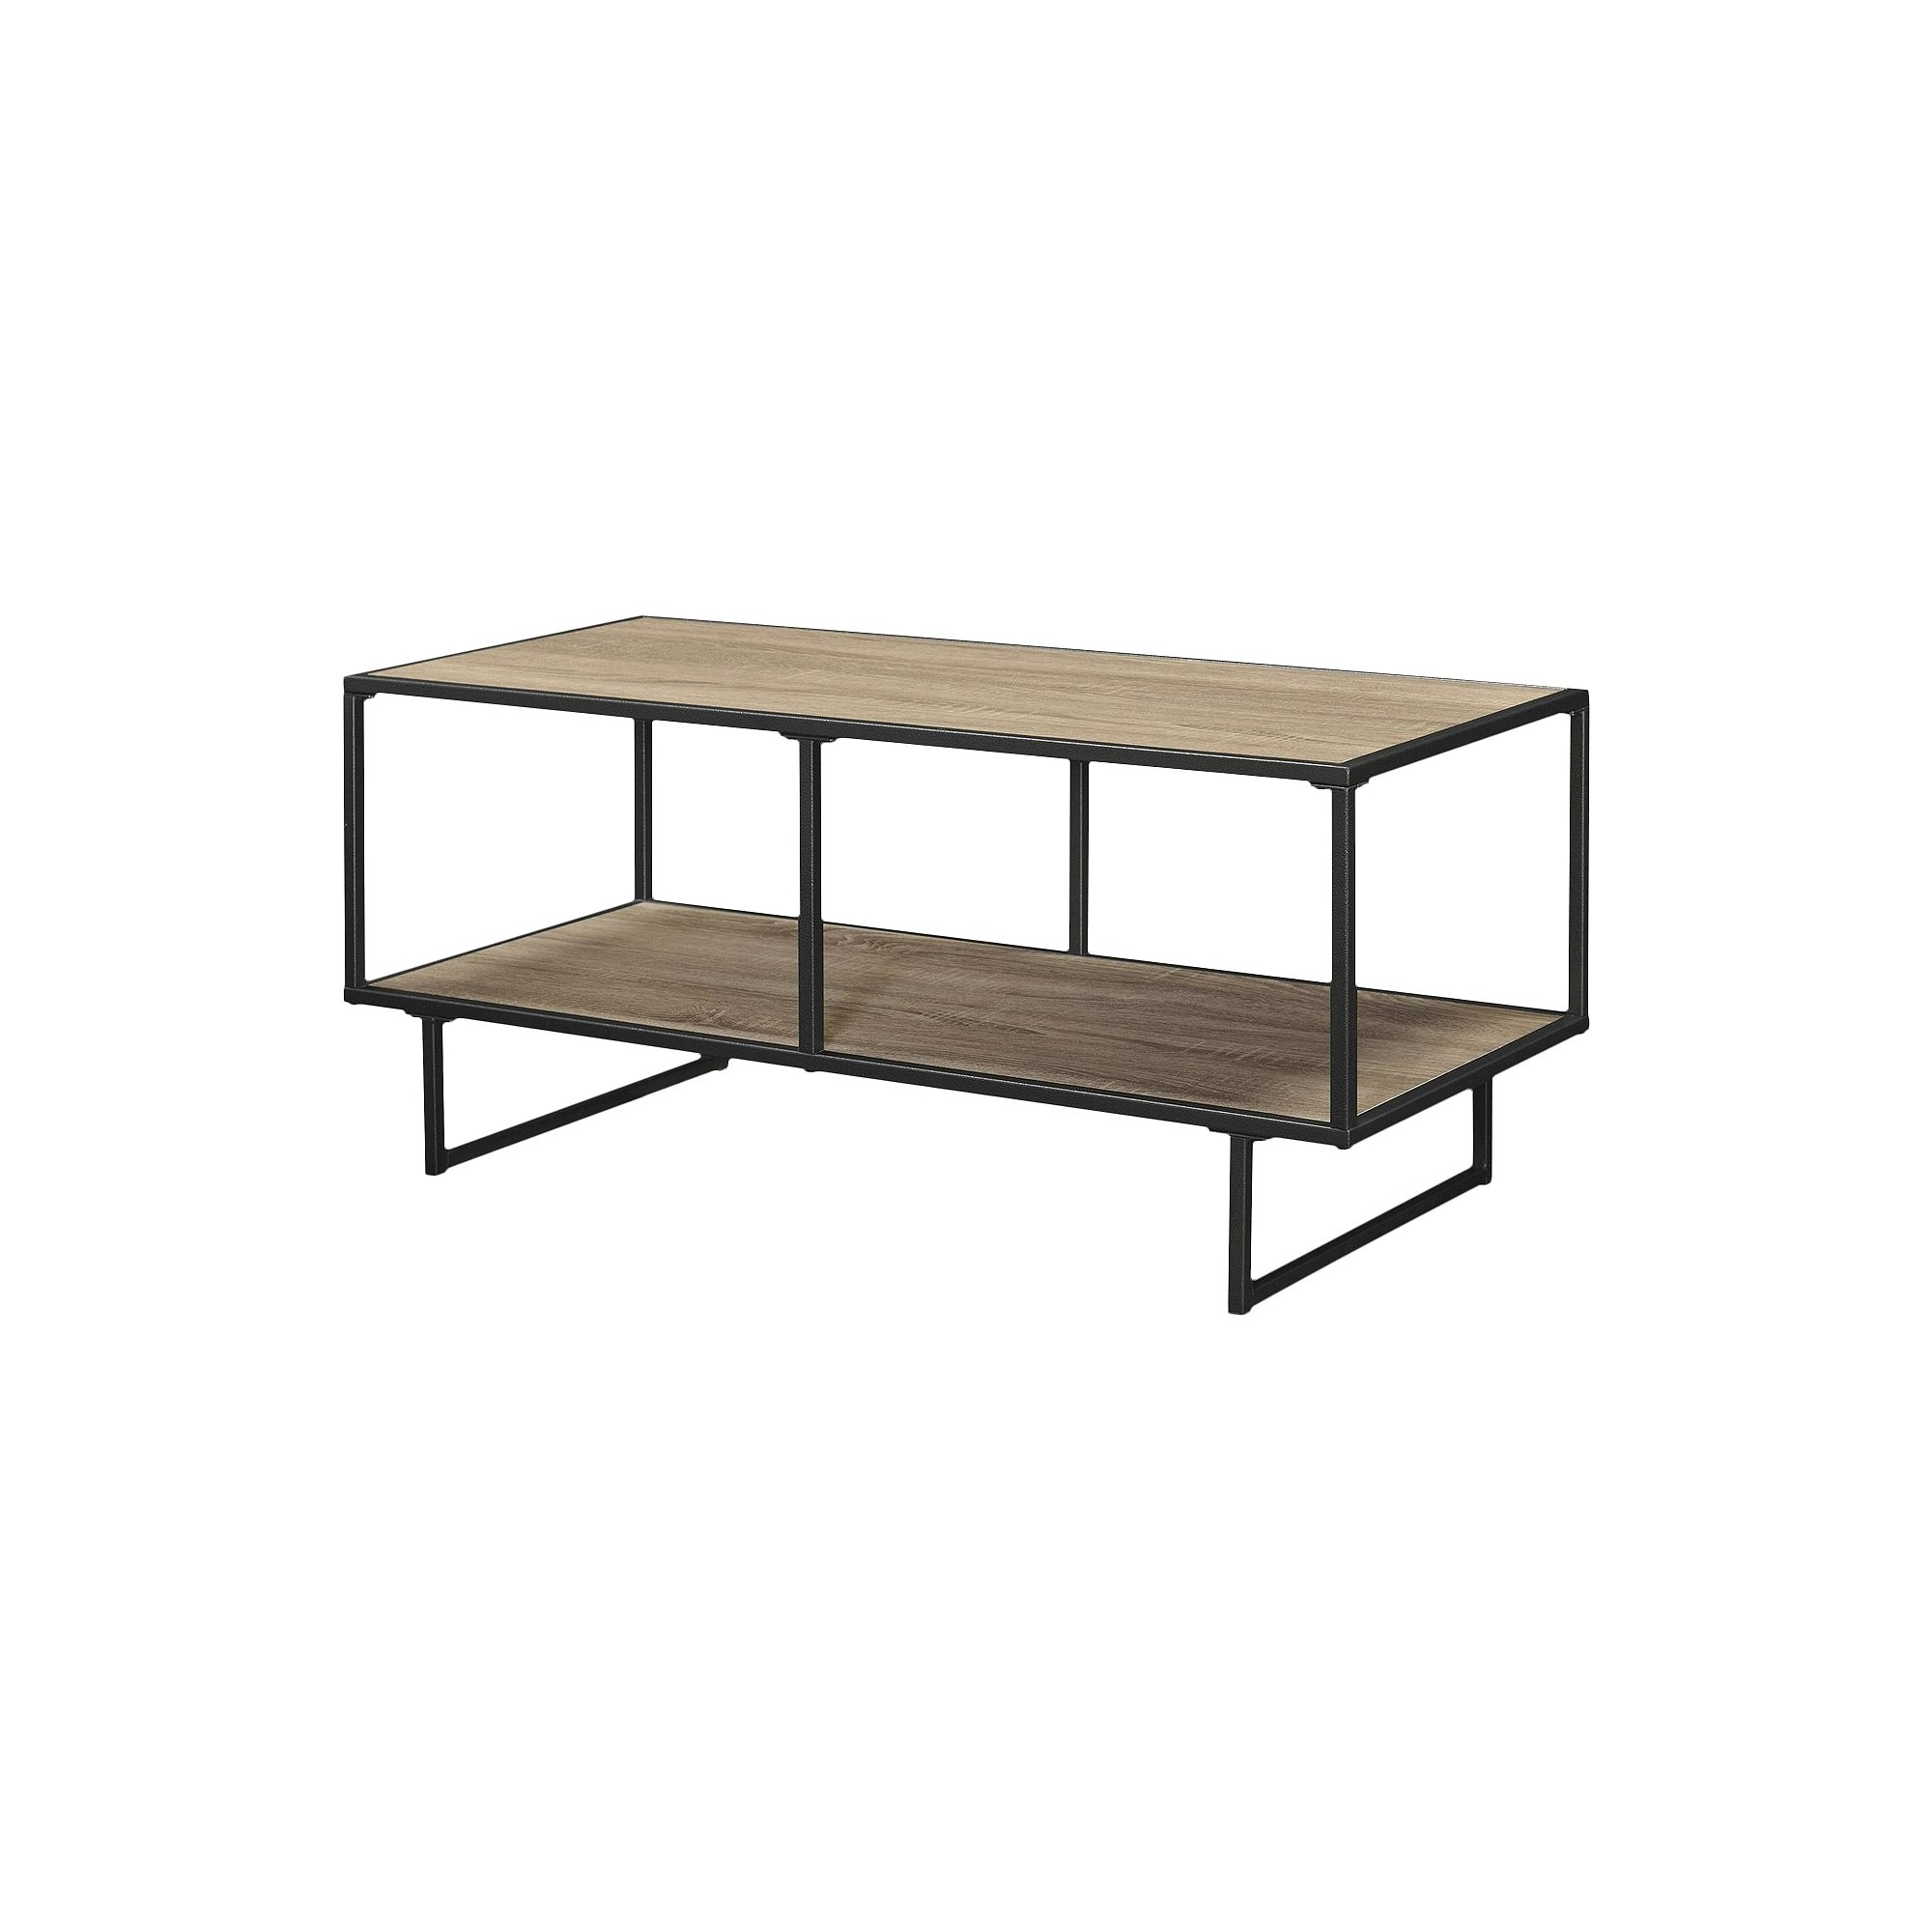 Gunmetal Media Console Tables Intended For Popular Emmett 42 Tv Stand/coffee Table With Metal Frame – Sonoma Oak (View 2 of 20)